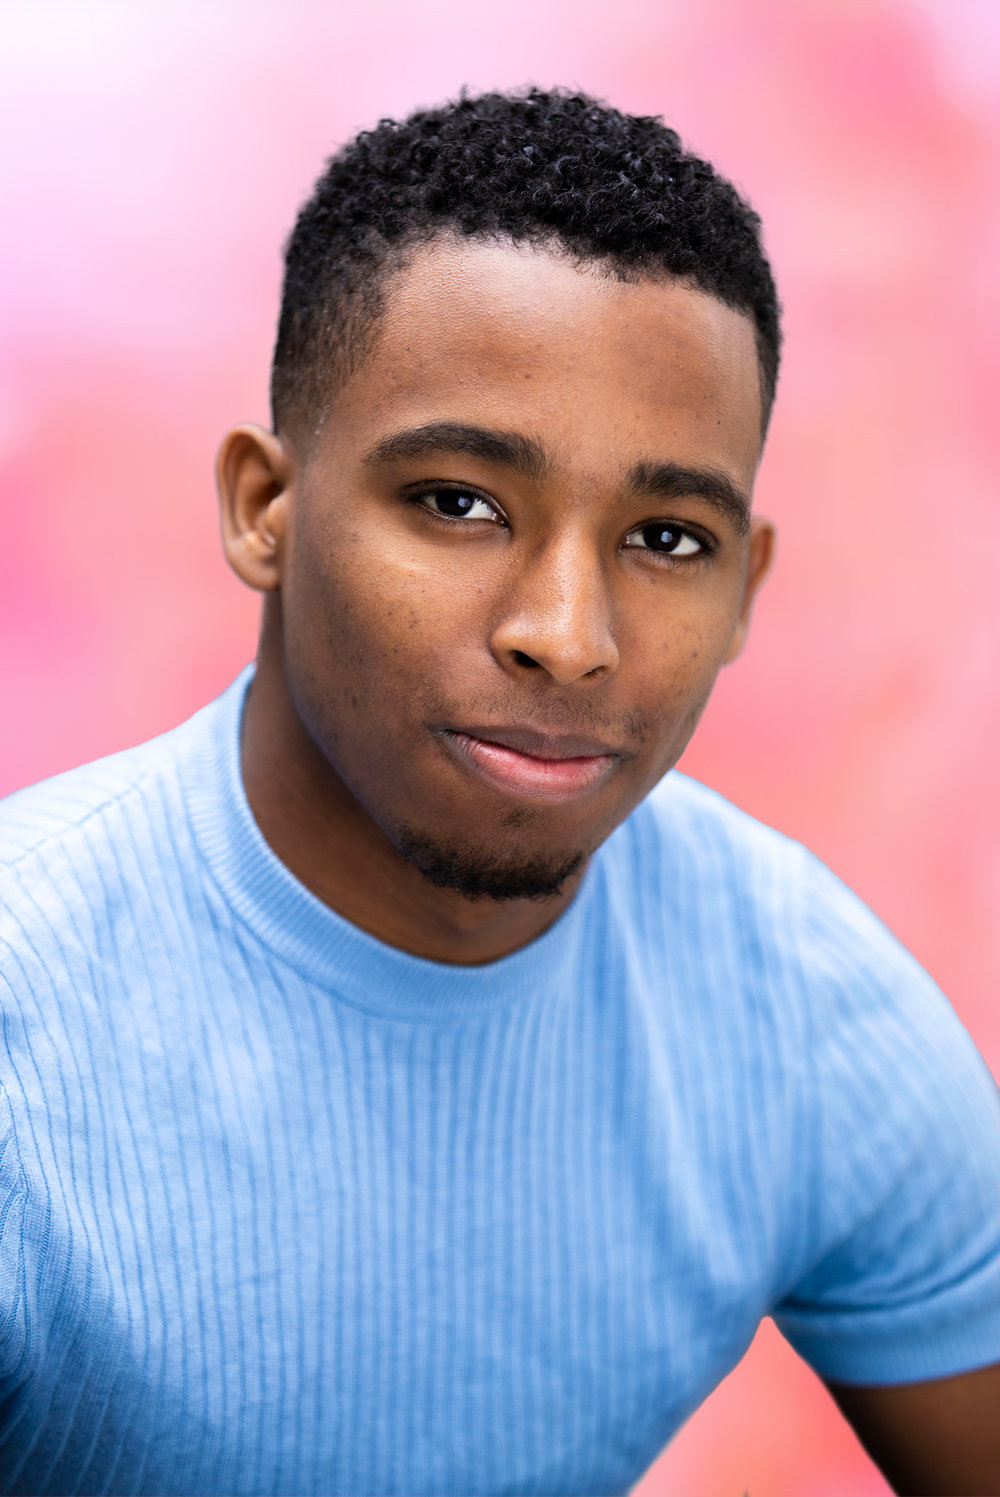 JOSHUA K. A. JOHNSON (Chip) , is honored to be joining the CCT Family. Joshua is a rising Junior at the Univ. of Cincinnati College-Conservatory of Music's BFA Musical Theatre Class of 2021. His national credits include appearances at Carnegie Hall (New York Pops Annual Gala), Lincoln Center (BDF Foundation), and at Disney (Christmas Day Celebration as a dancer with Mariah Carey). Additional theatre credits include:  The Little Mermaid  (Sebastian),  The Wizard of Oz  (Tinman),  Putnam County Spelling Bee  (Chip Tolentino),  Spring Awakening  (Georg Zirschnitz),  How to Succeed  (Dance Captain),  Seussical  (Cat in the Hat). Joshua is grateful for his supportive community. He extends his eternal gratutude to CCM, BDF, BDC, DASOTA, CB, David, & His Loving Family.